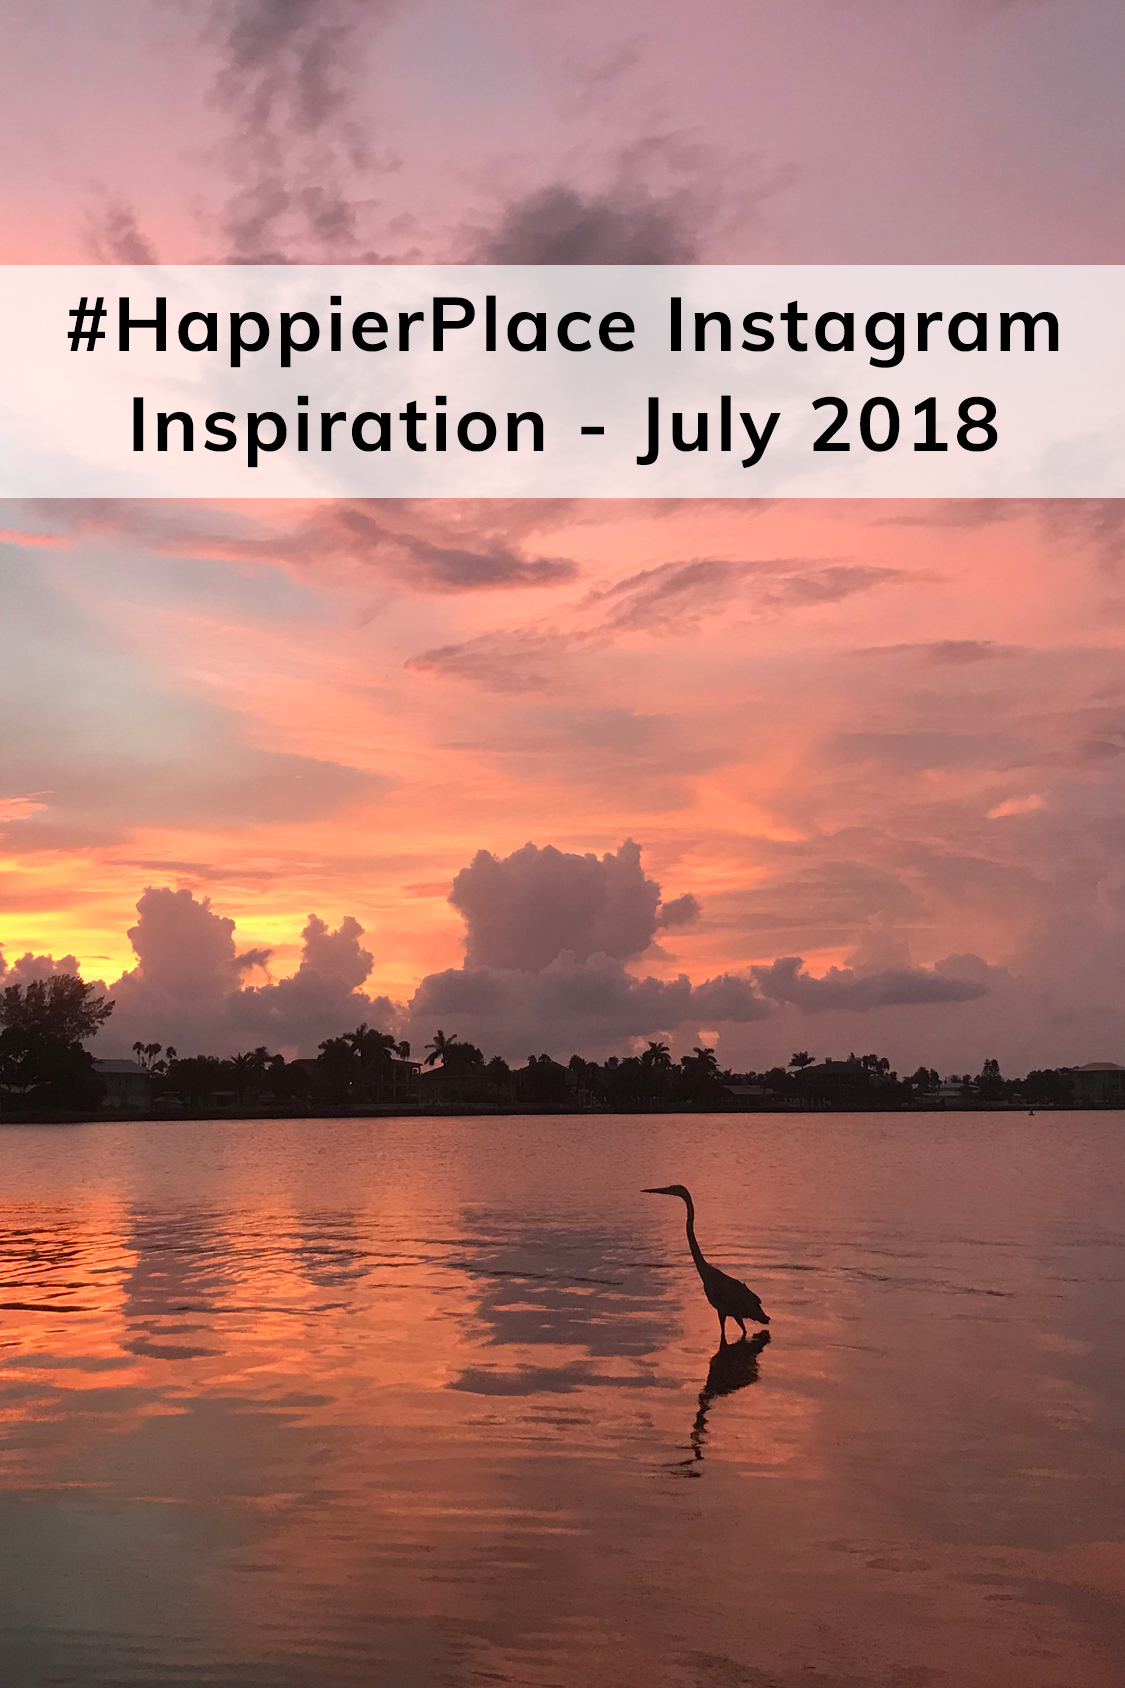 One of the best #HappierPlace-tagged nature photos shared in July on Instagram.